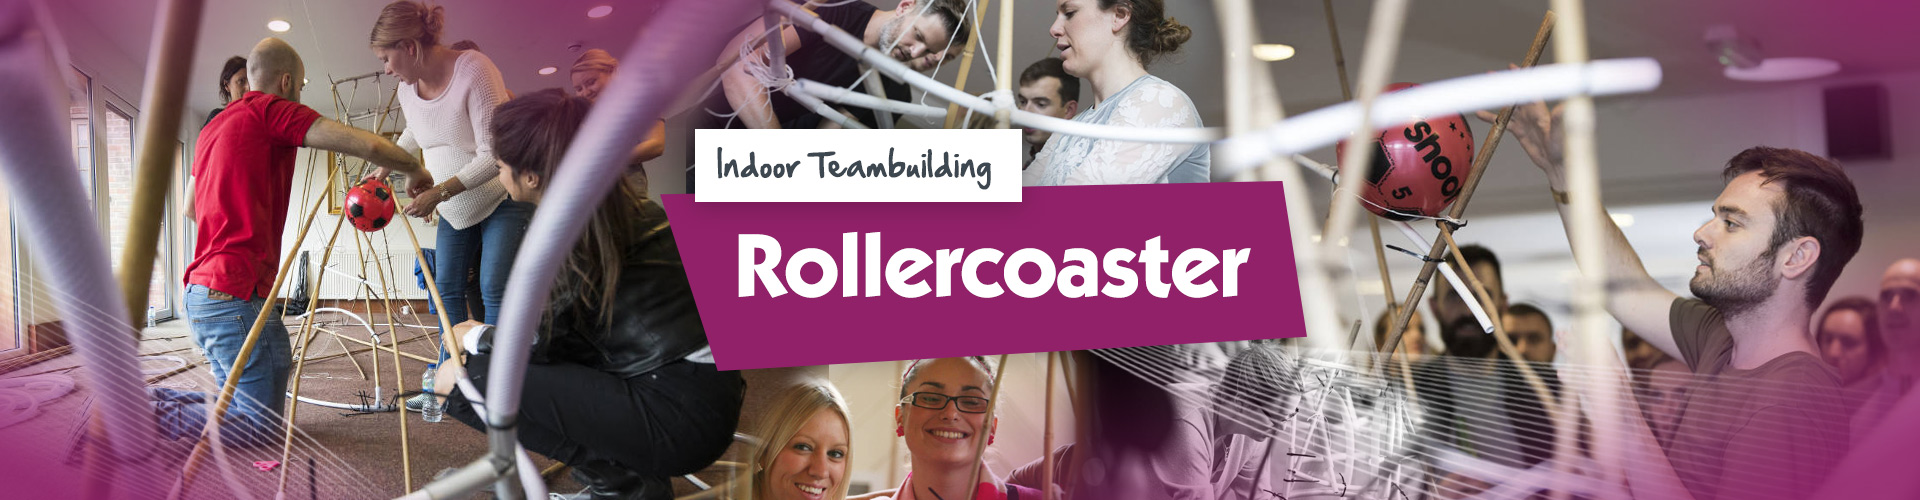 Teambuilding | Rollercoaster